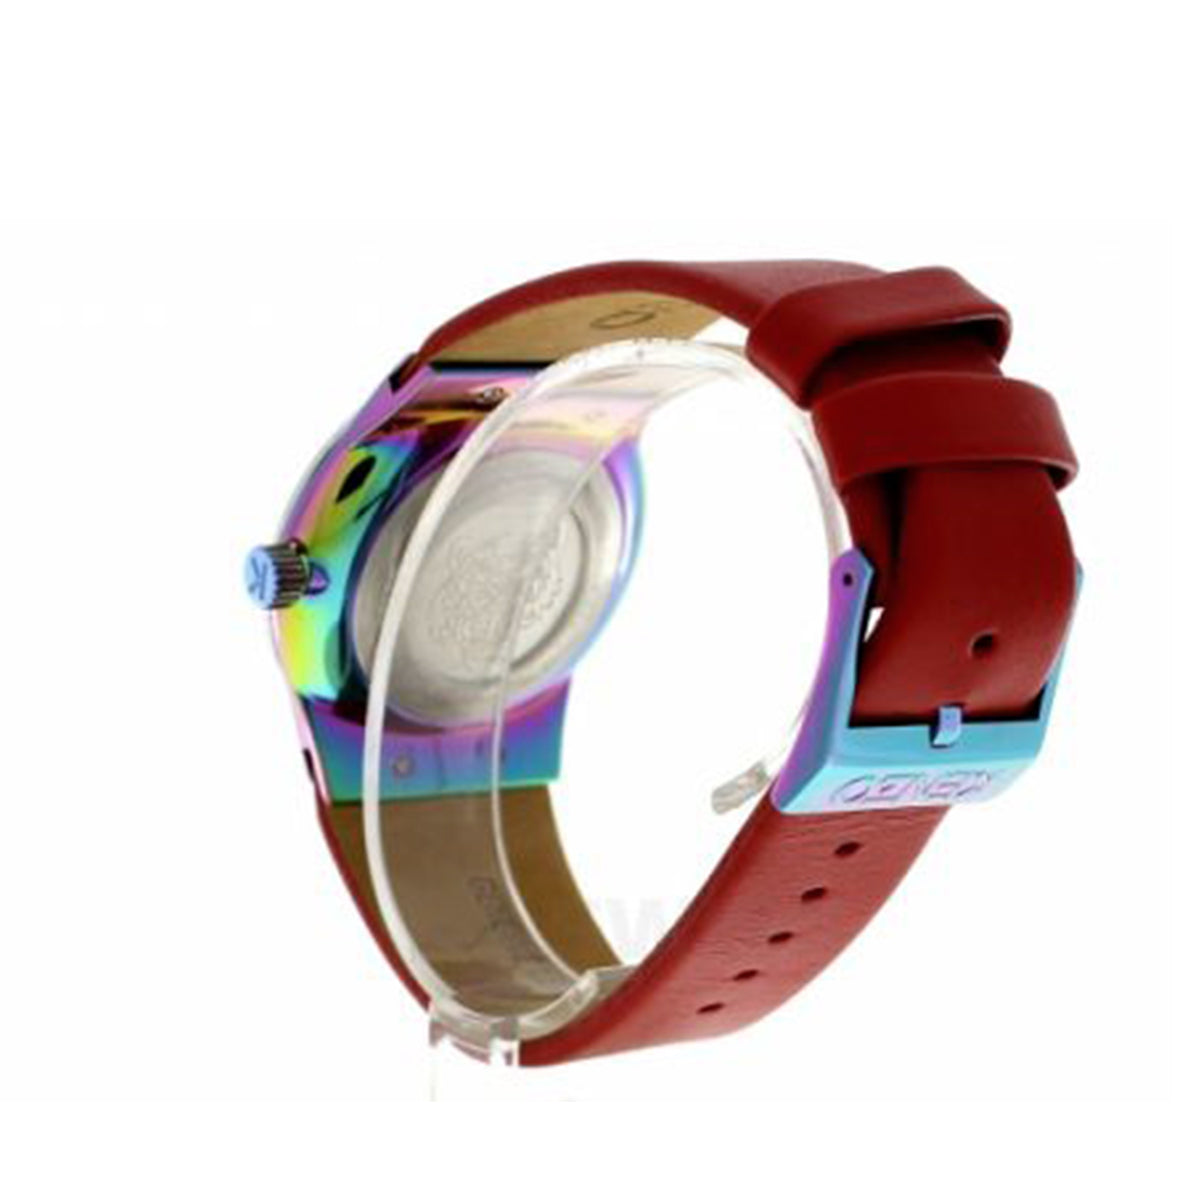 dbe3f5e3 Kenzo K0024004 Red Leather Strap Men's Watch - MIMO DEALS